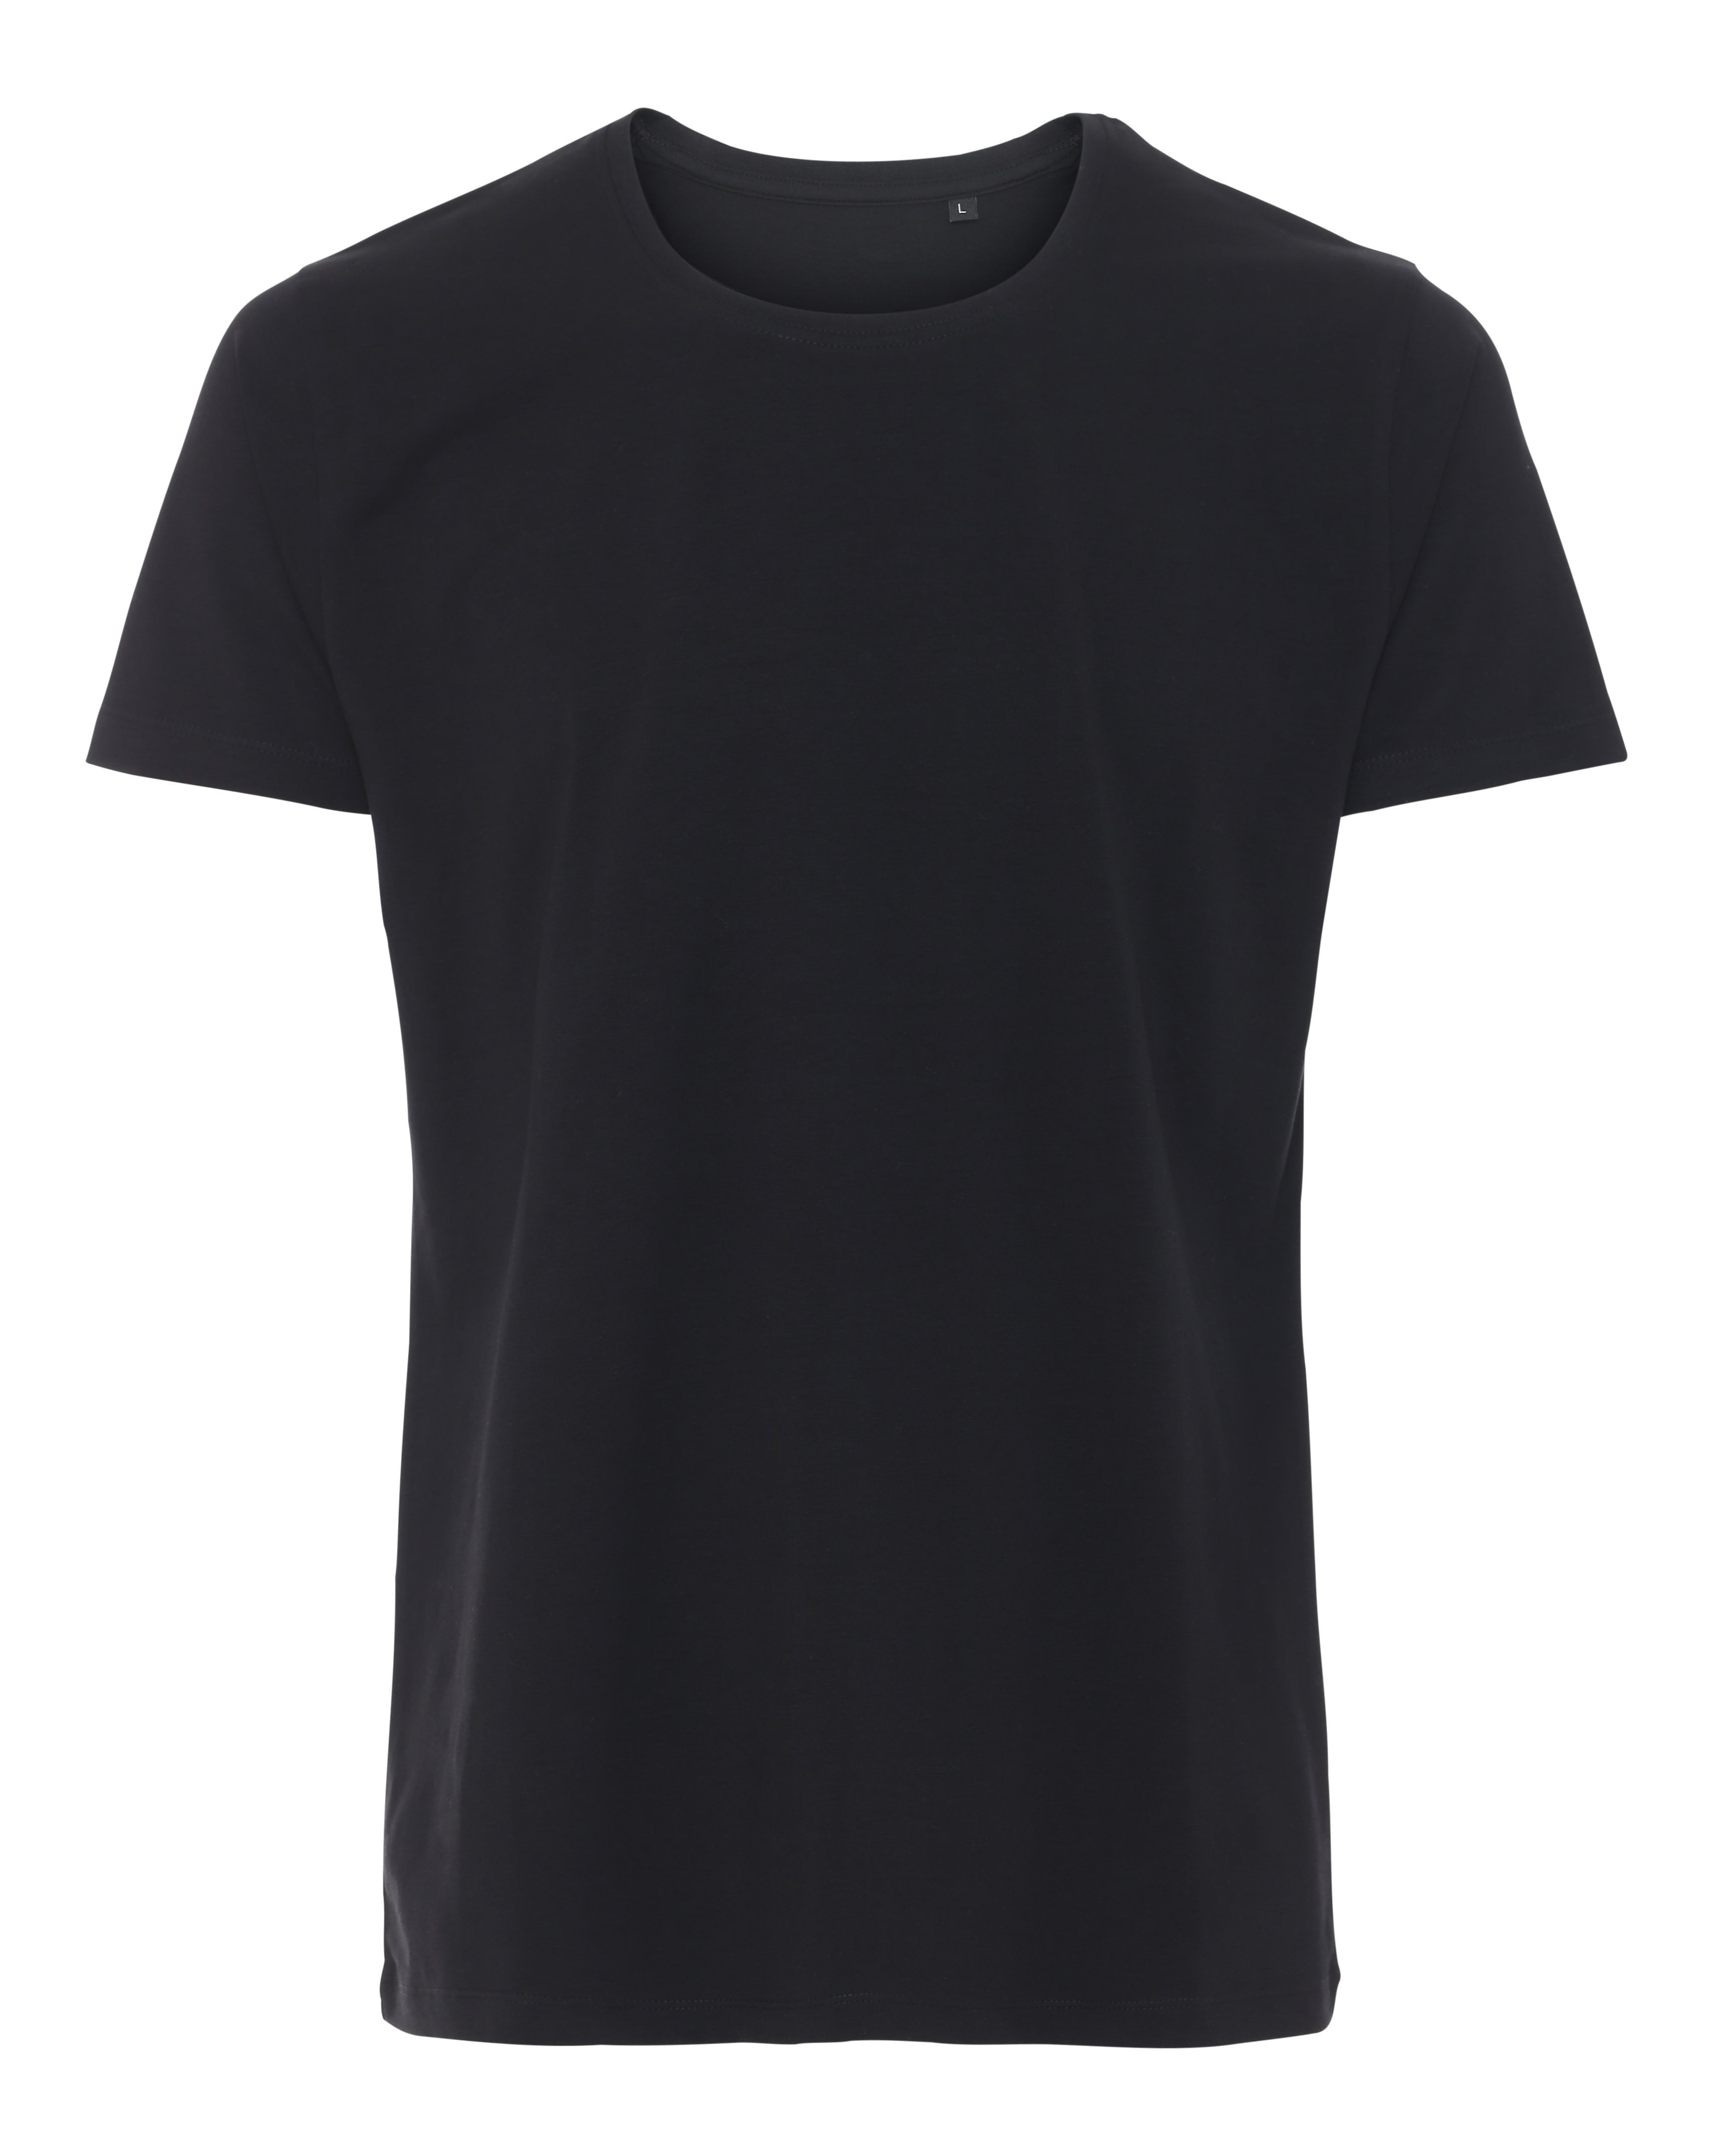 Image of   Muscle fit tee - Black